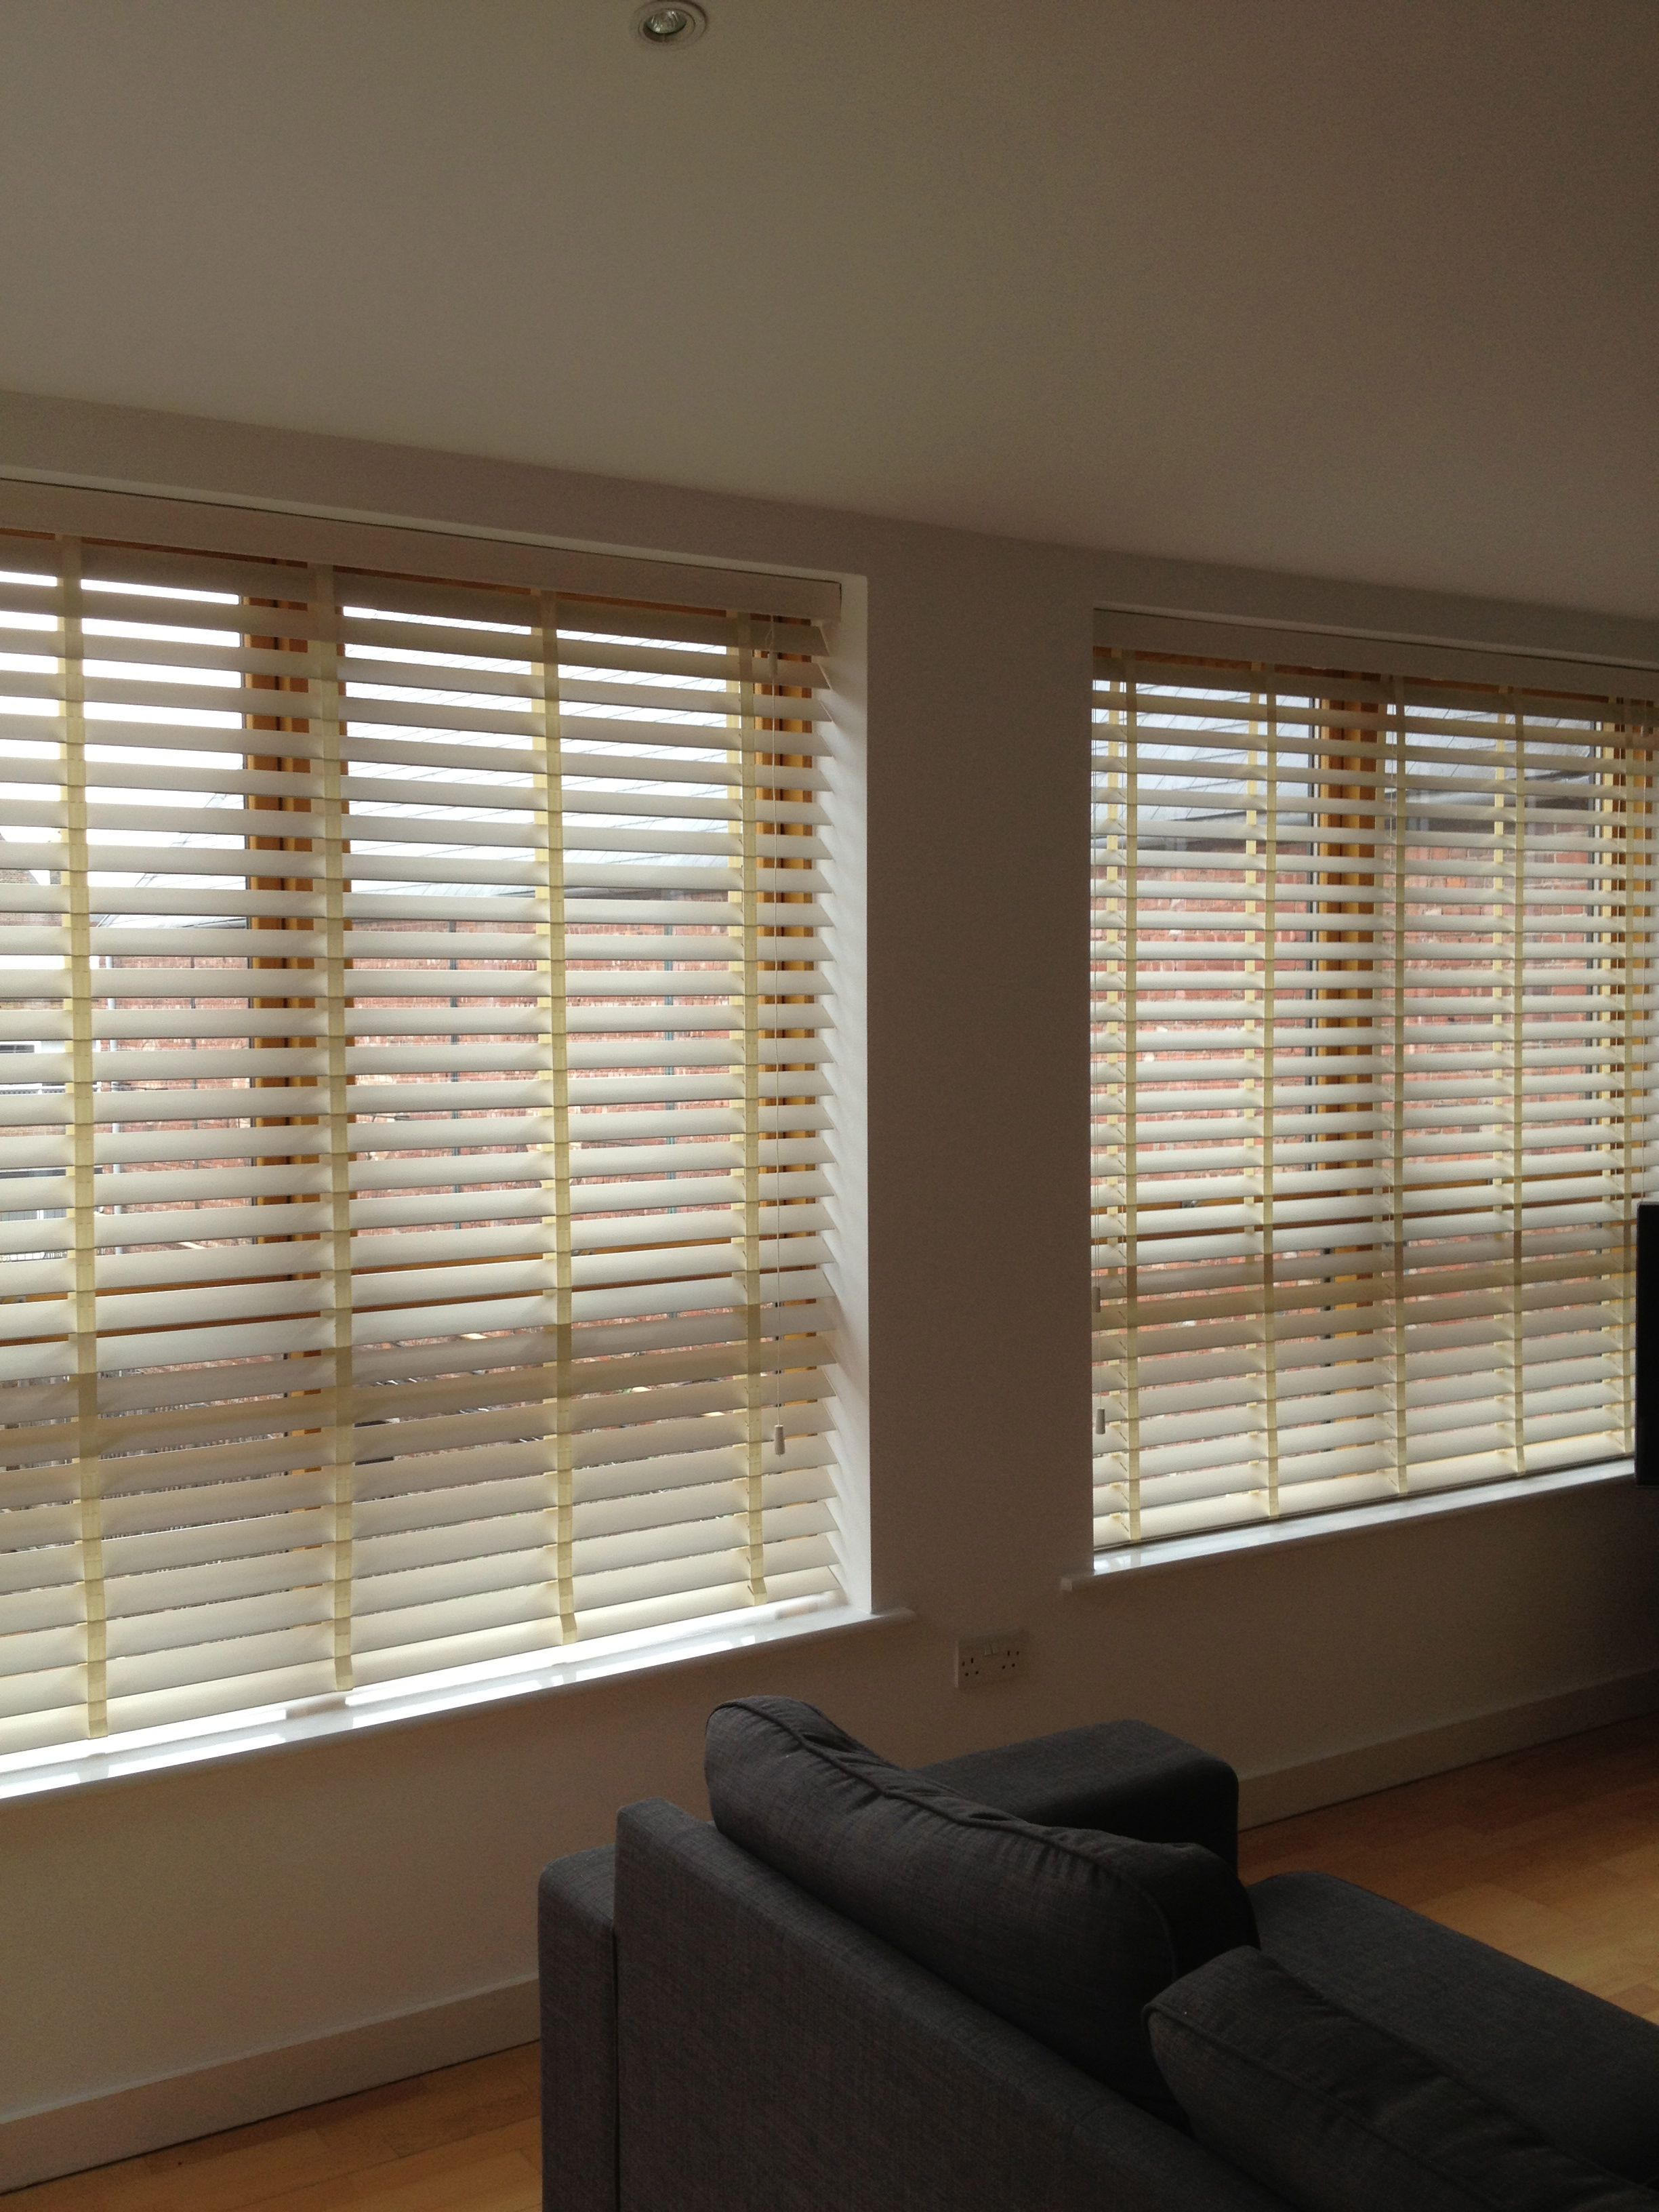 shade ca wood blindsca and economy window woven blinds p shades